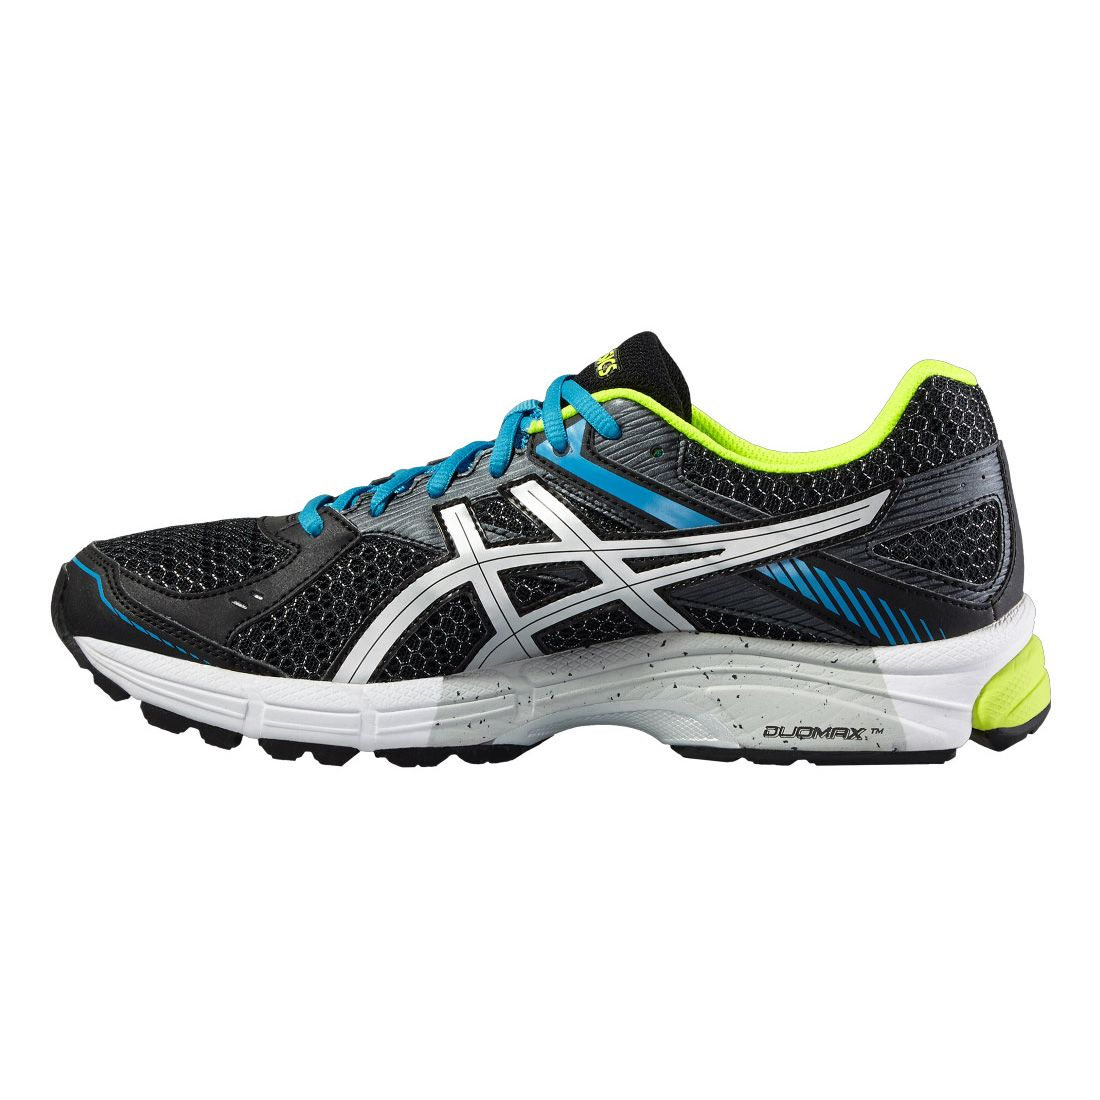 asics gel innovate 7 mens running shoes